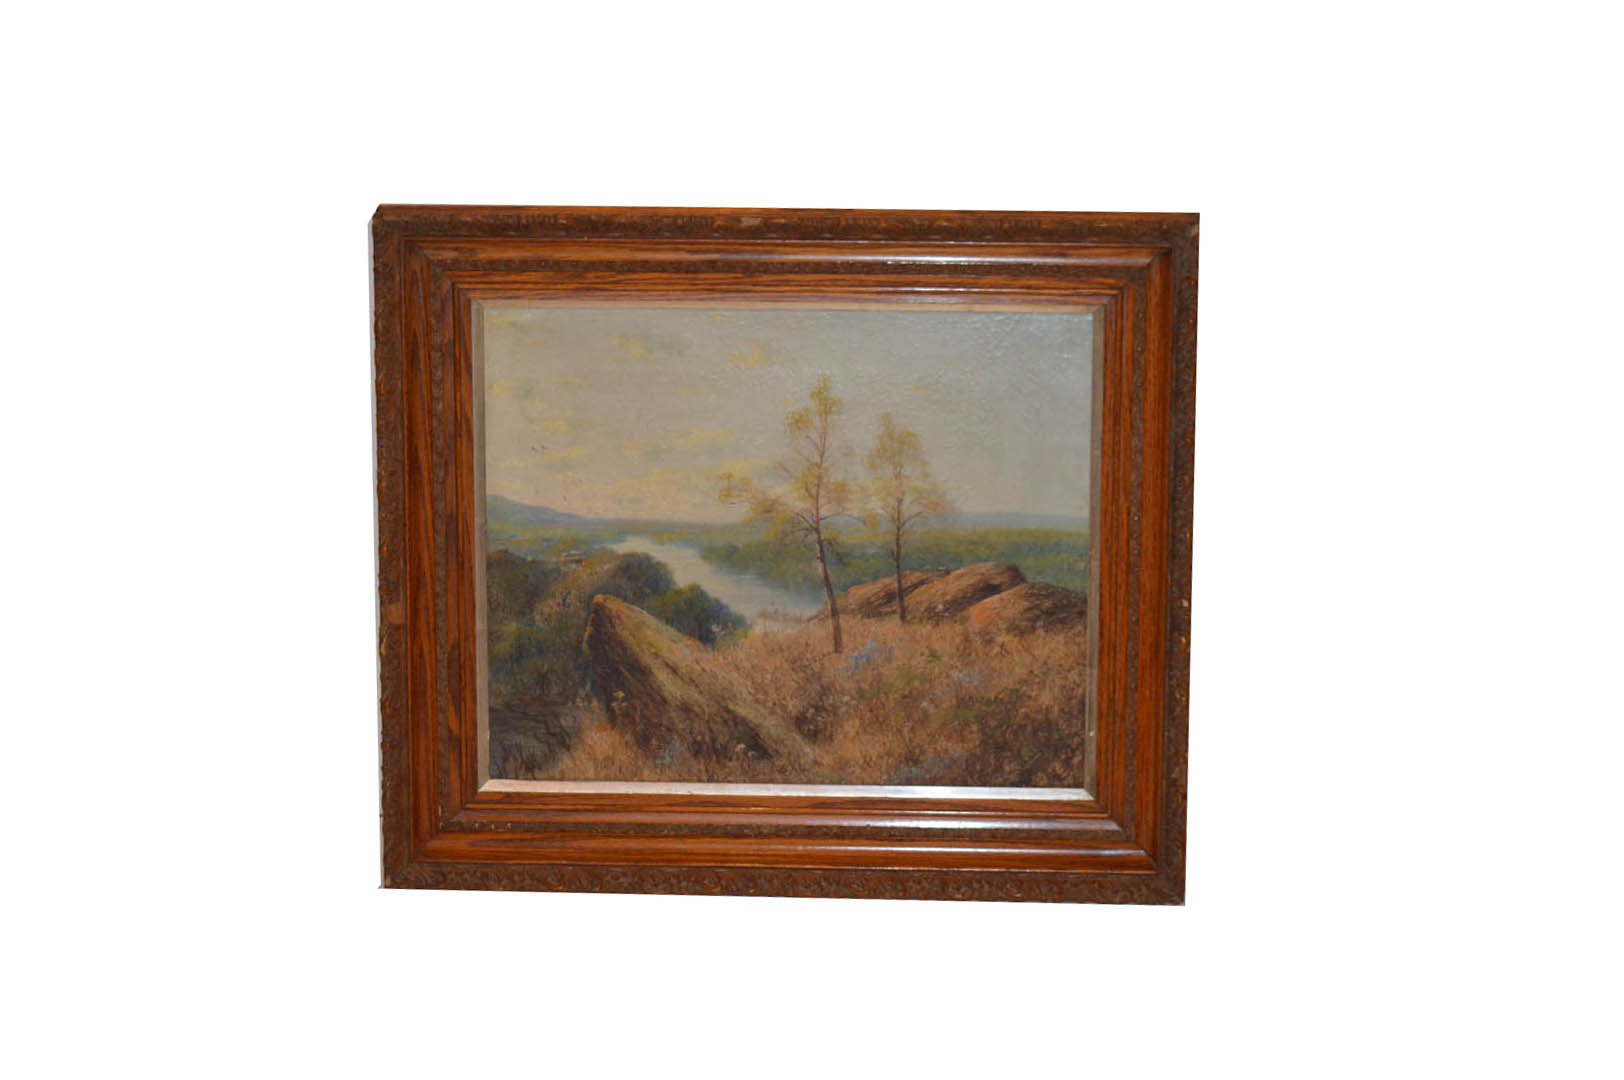 Lot 396 - An Oil Painting 'Landscape' in Ornate Frame